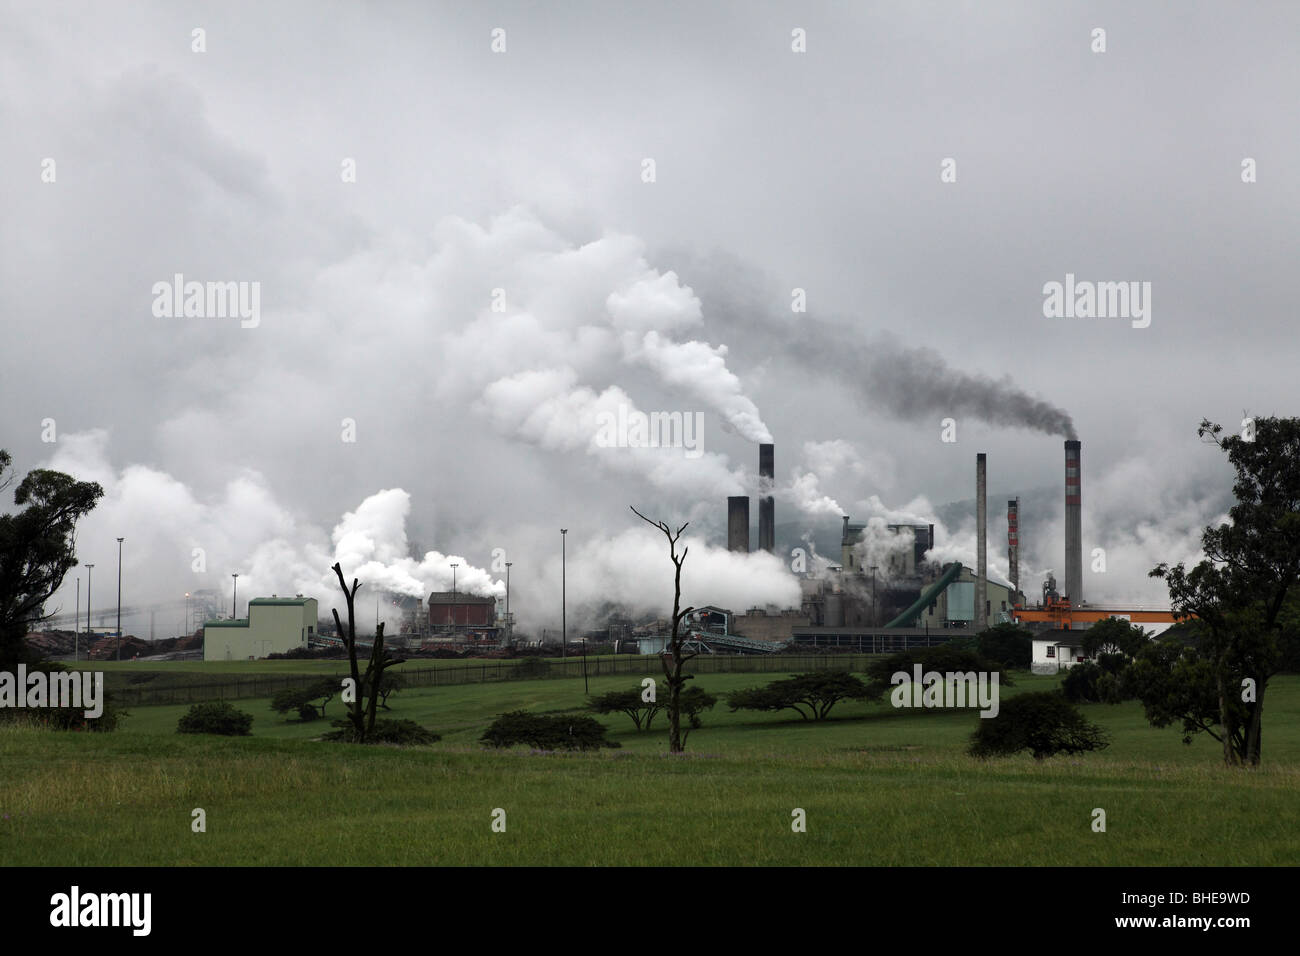 A factory emits smoke from the chimneys at Mandeni South Africa Stock Photo